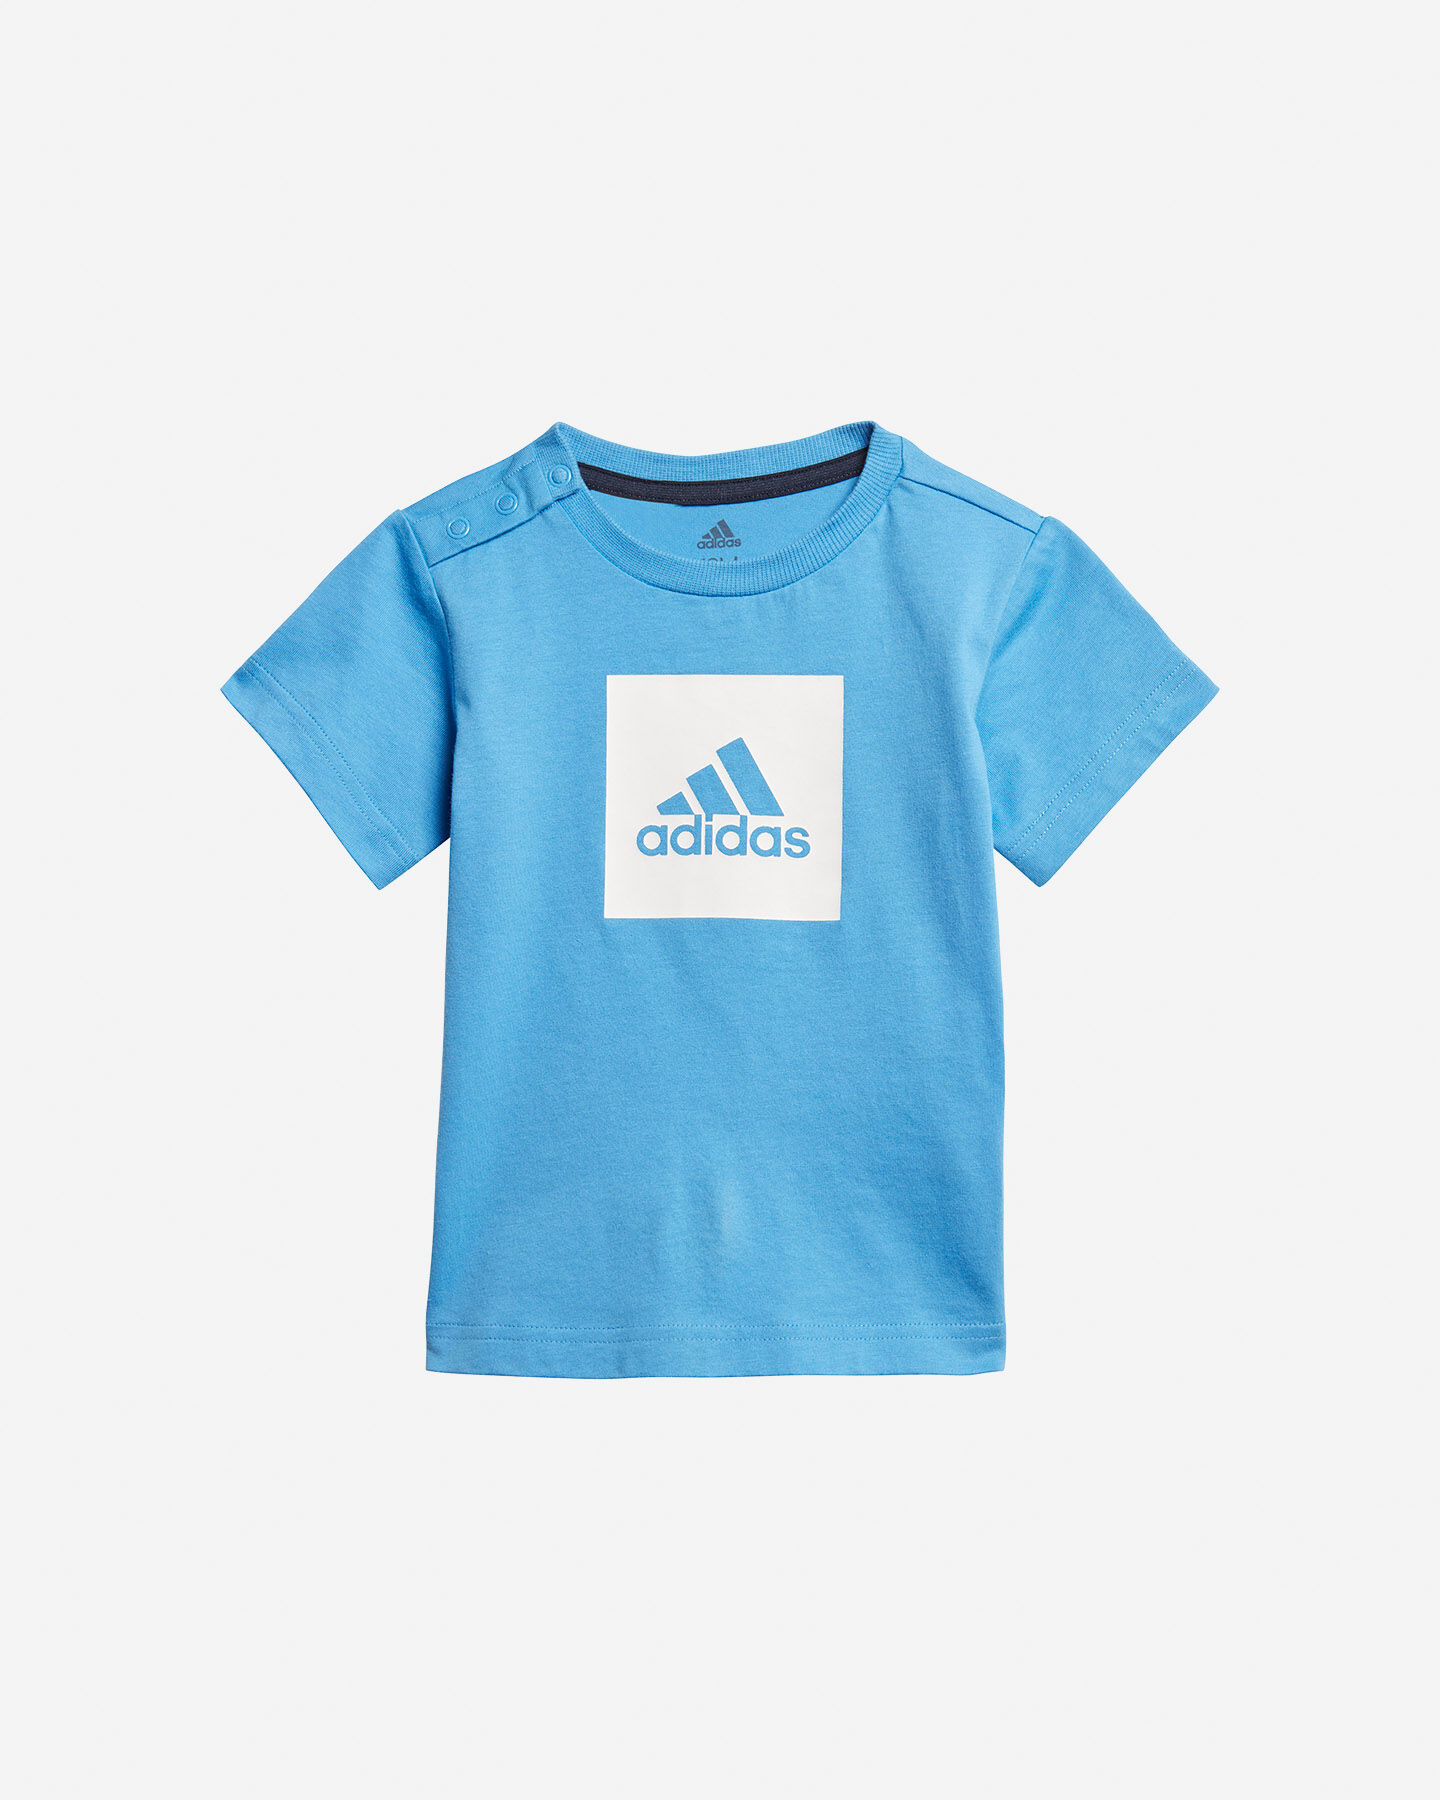 Completo ADIDAS LOGO SUMMER JR S5149135 scatto 1